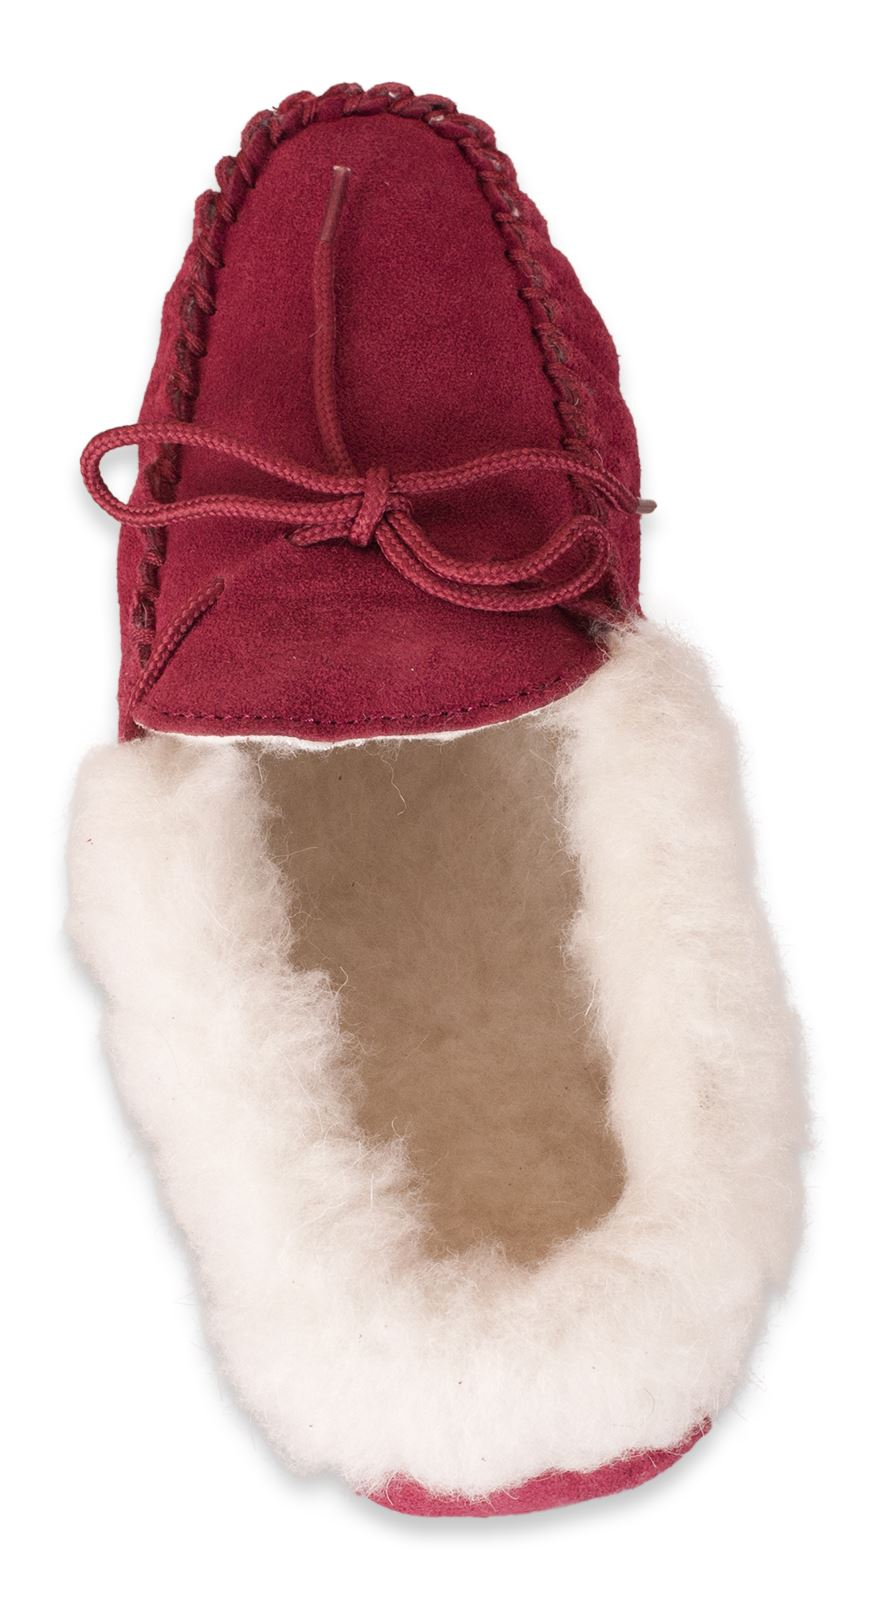 63a2f2985 Ugg Ansley Exotic Snake Slipper - cheap watches mgc-gas.com